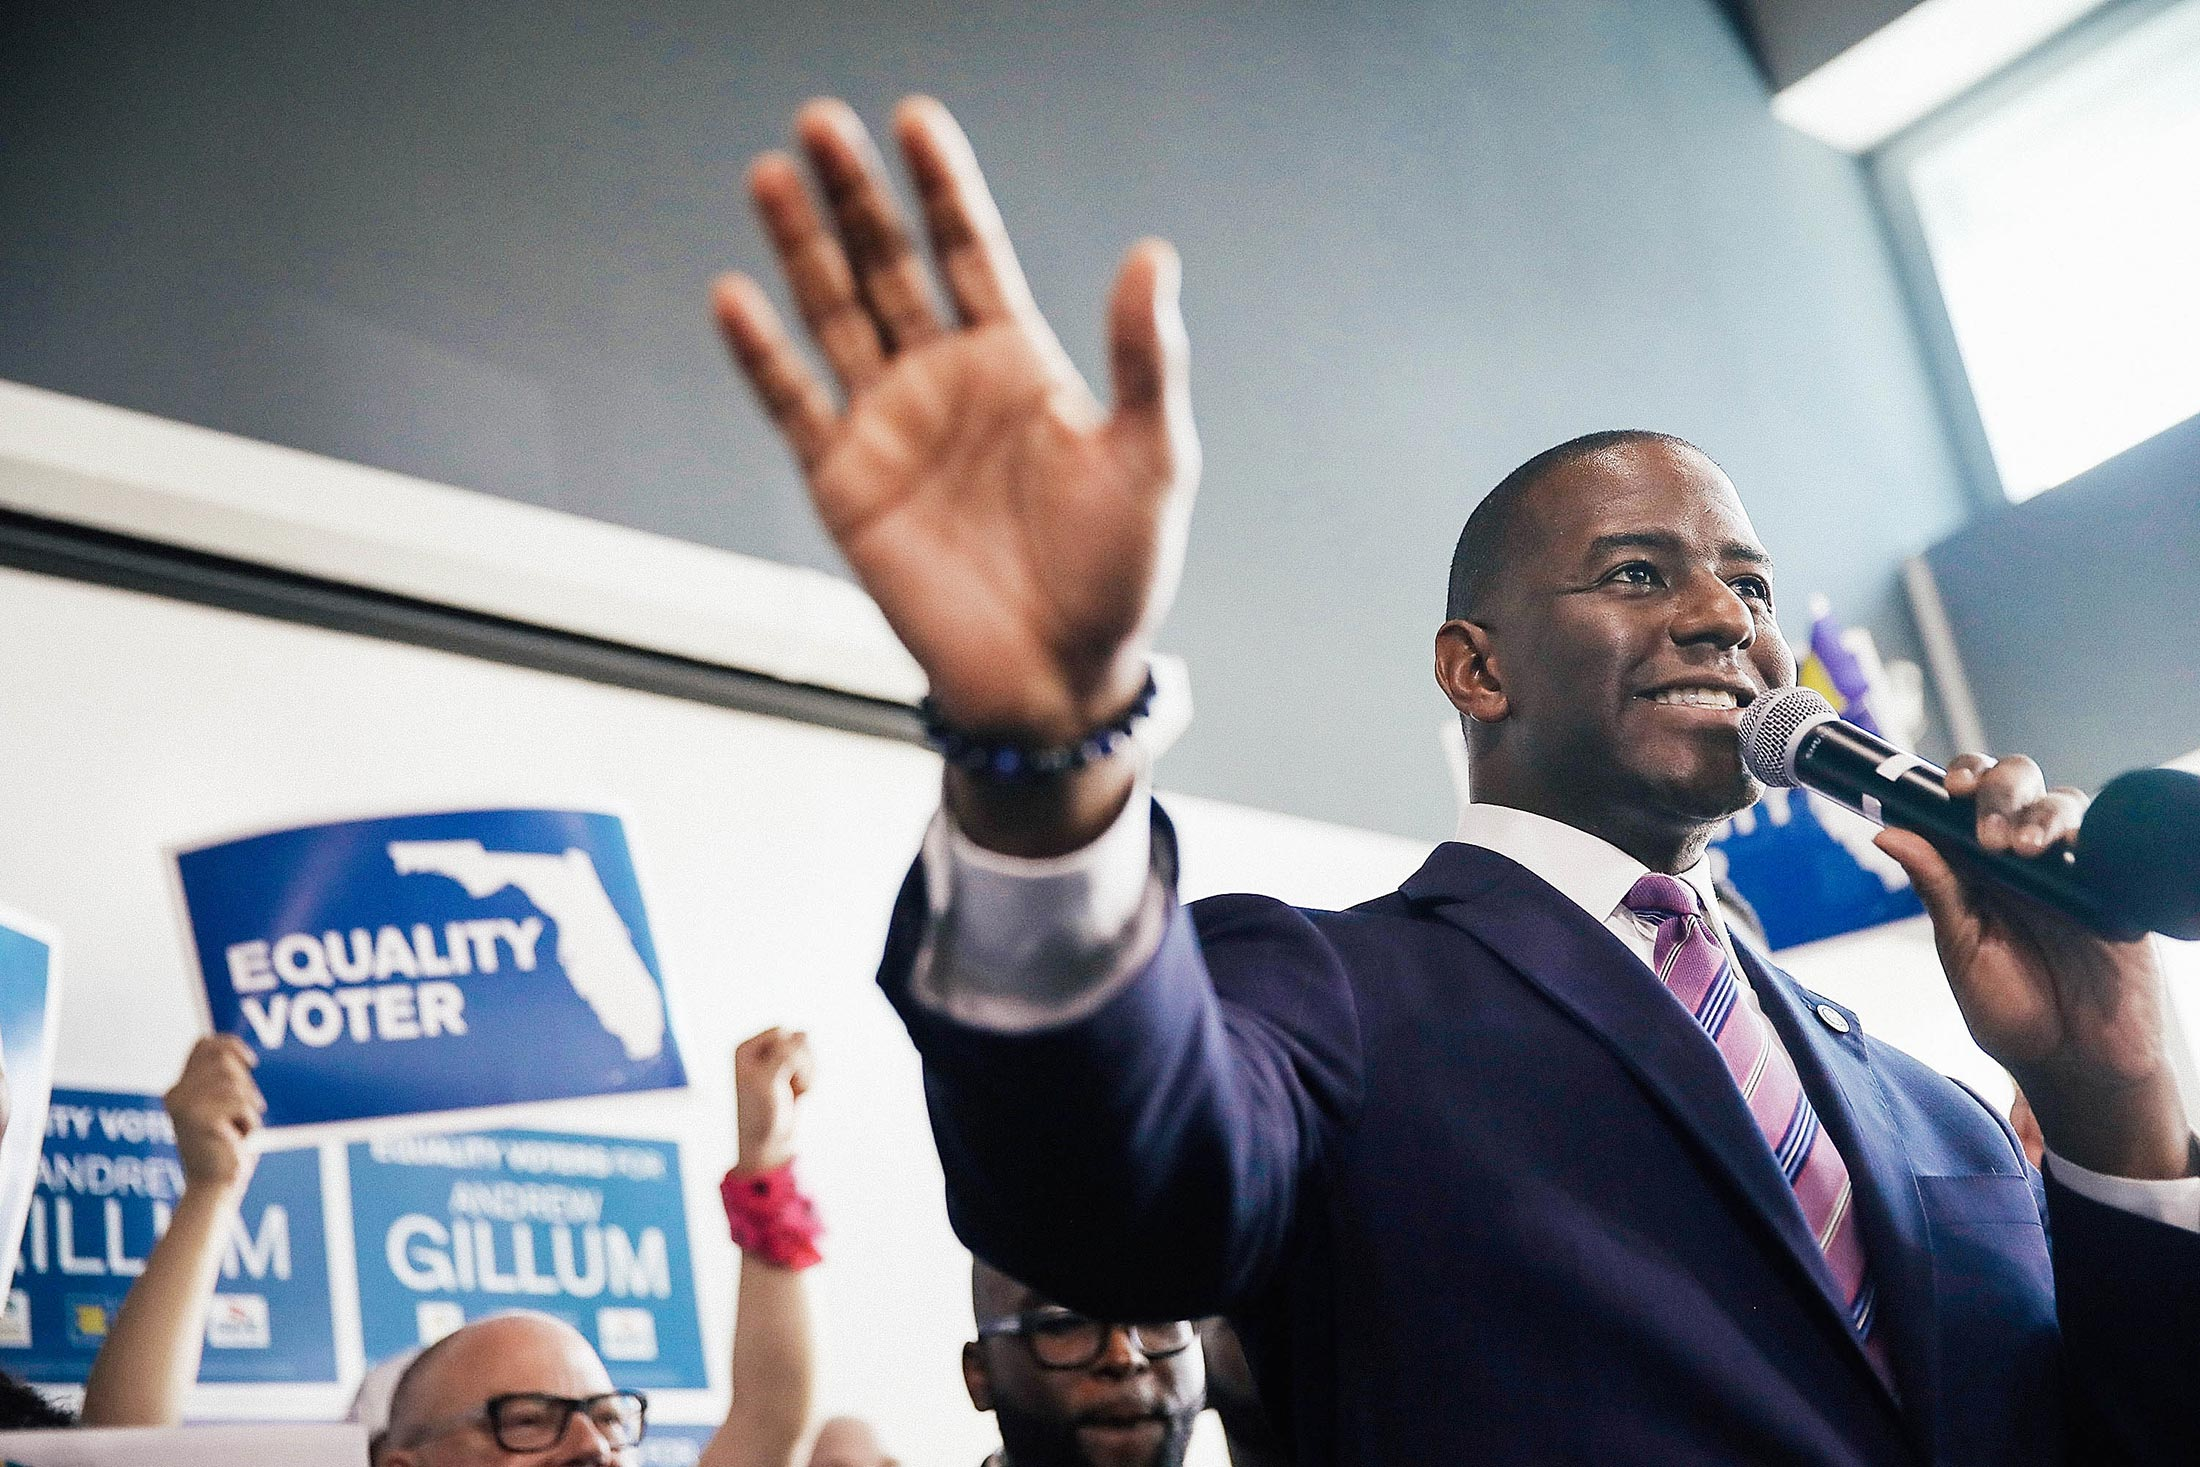 Andrew Gillum speaks into a microphone at a campaign rally.